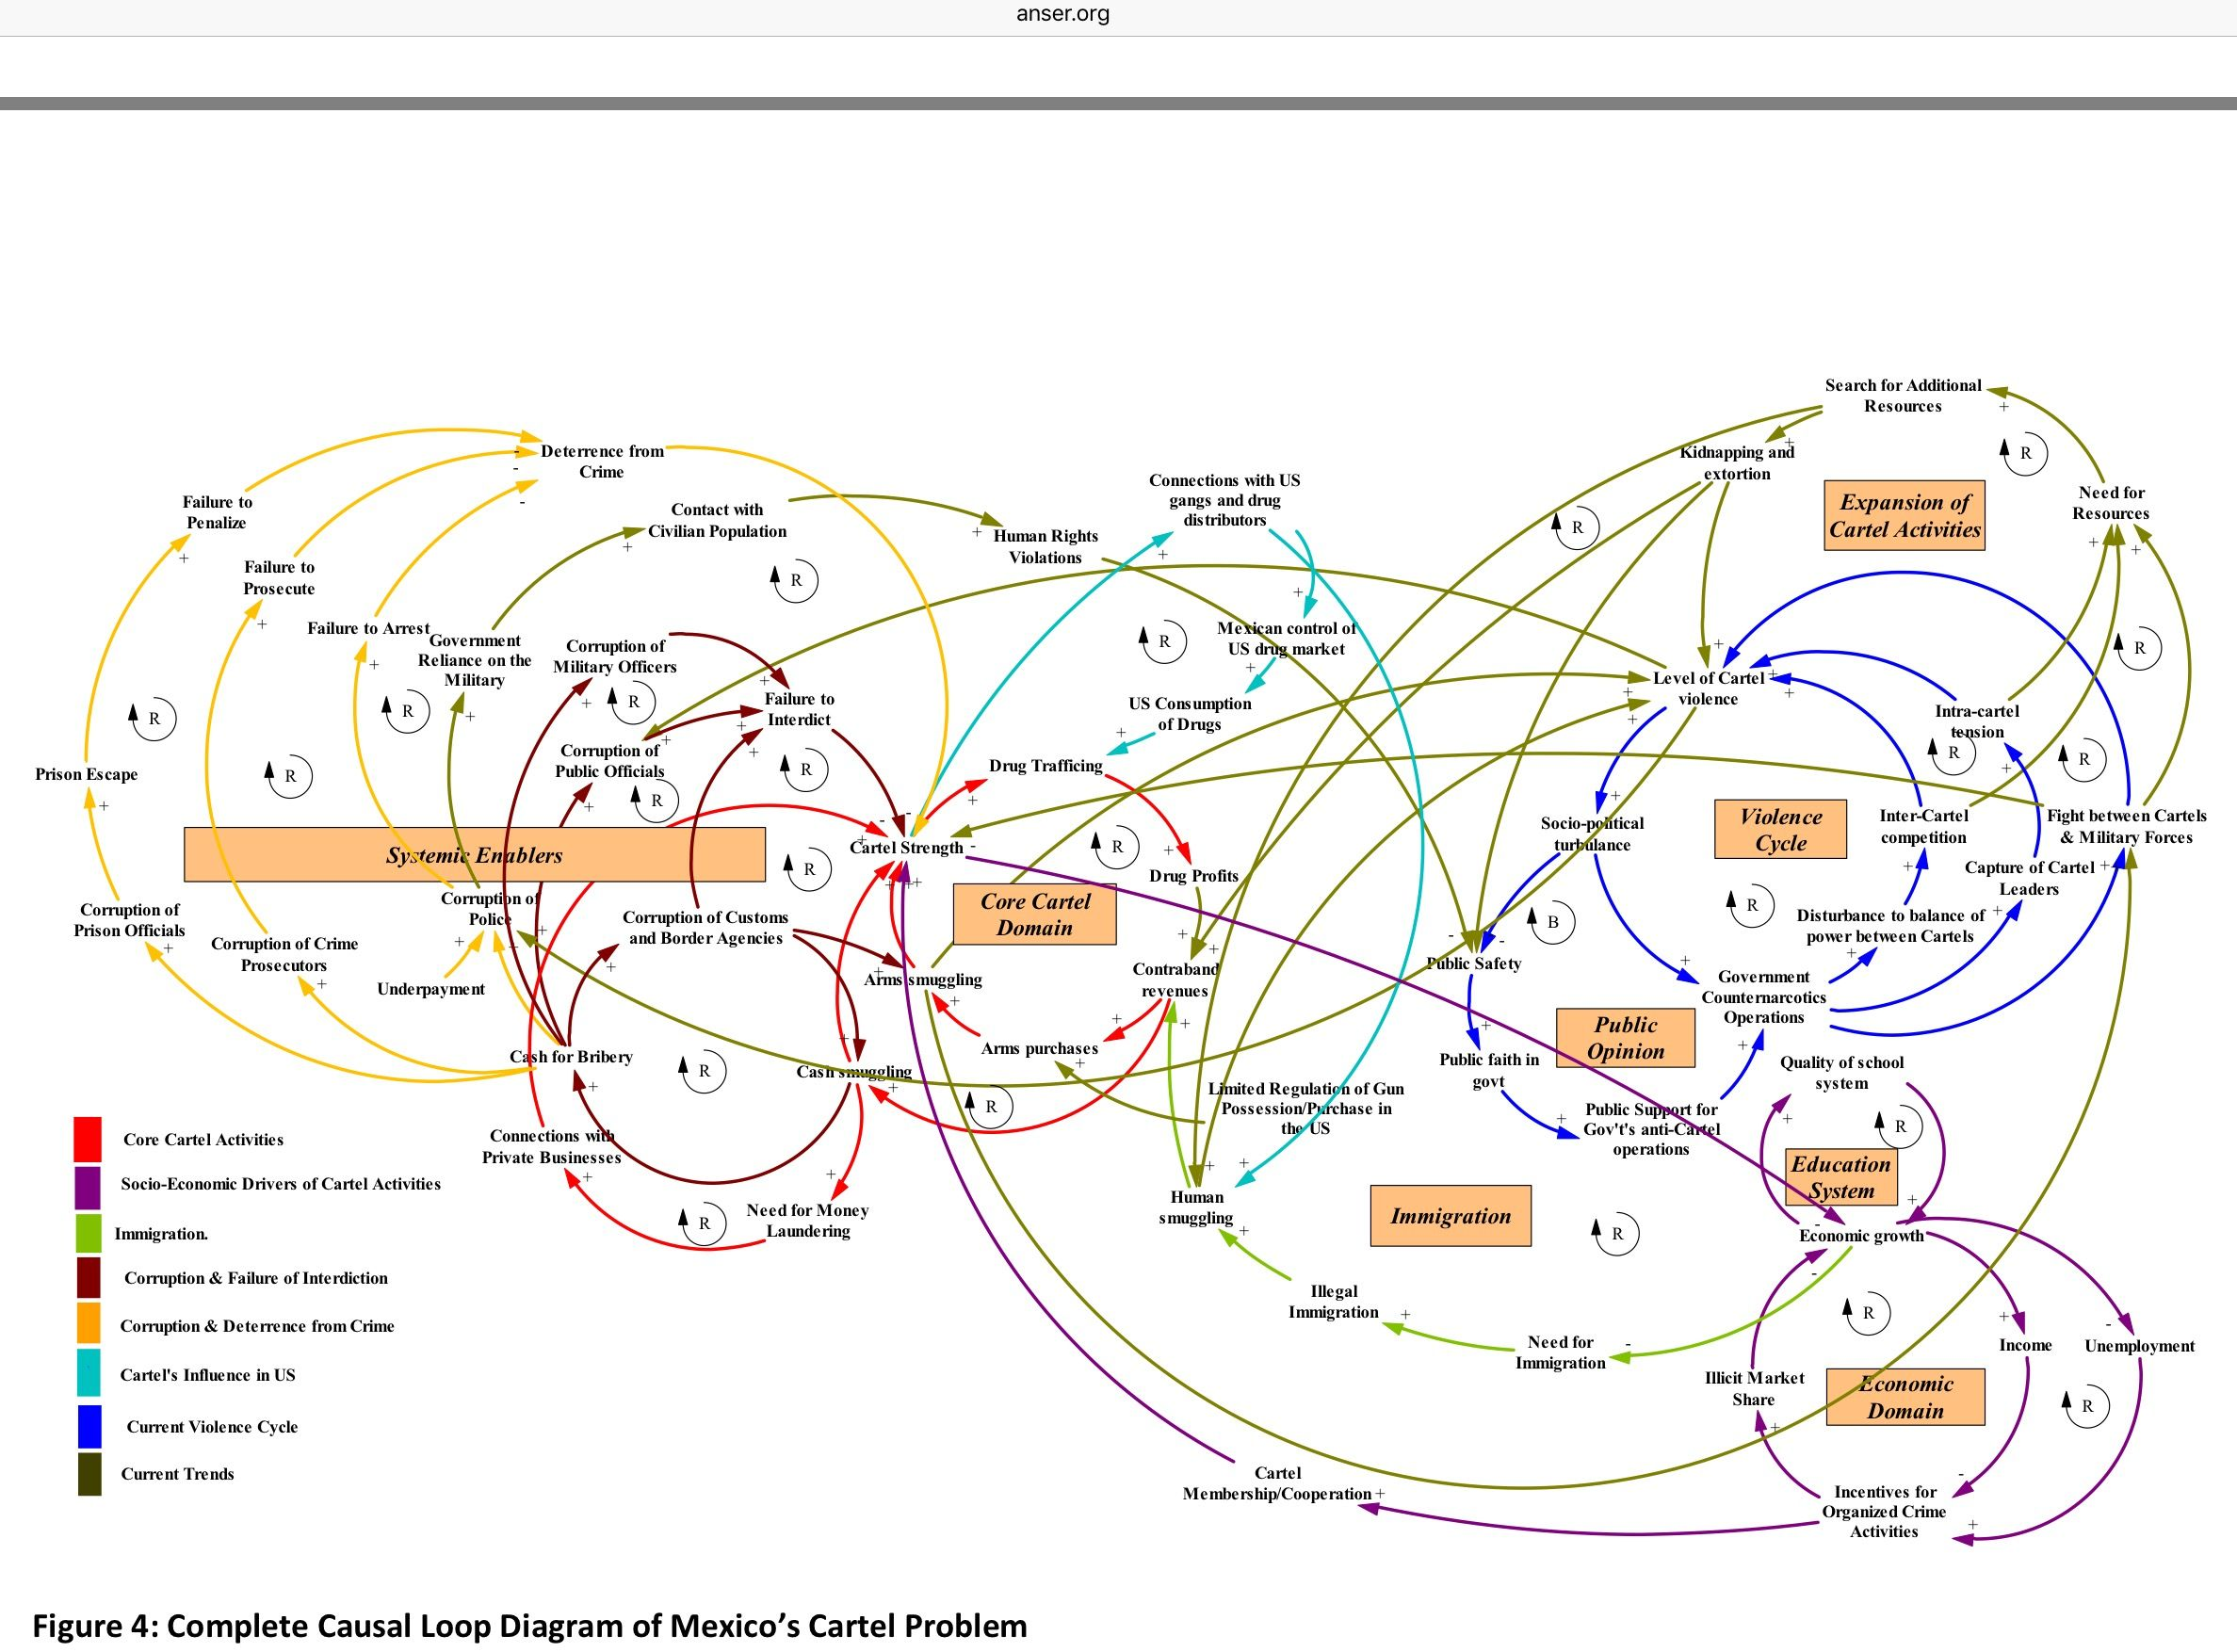 Causal loop diagram of mexicos cartel problem system maps causal loop diagram of mexicos cartel problem ccuart